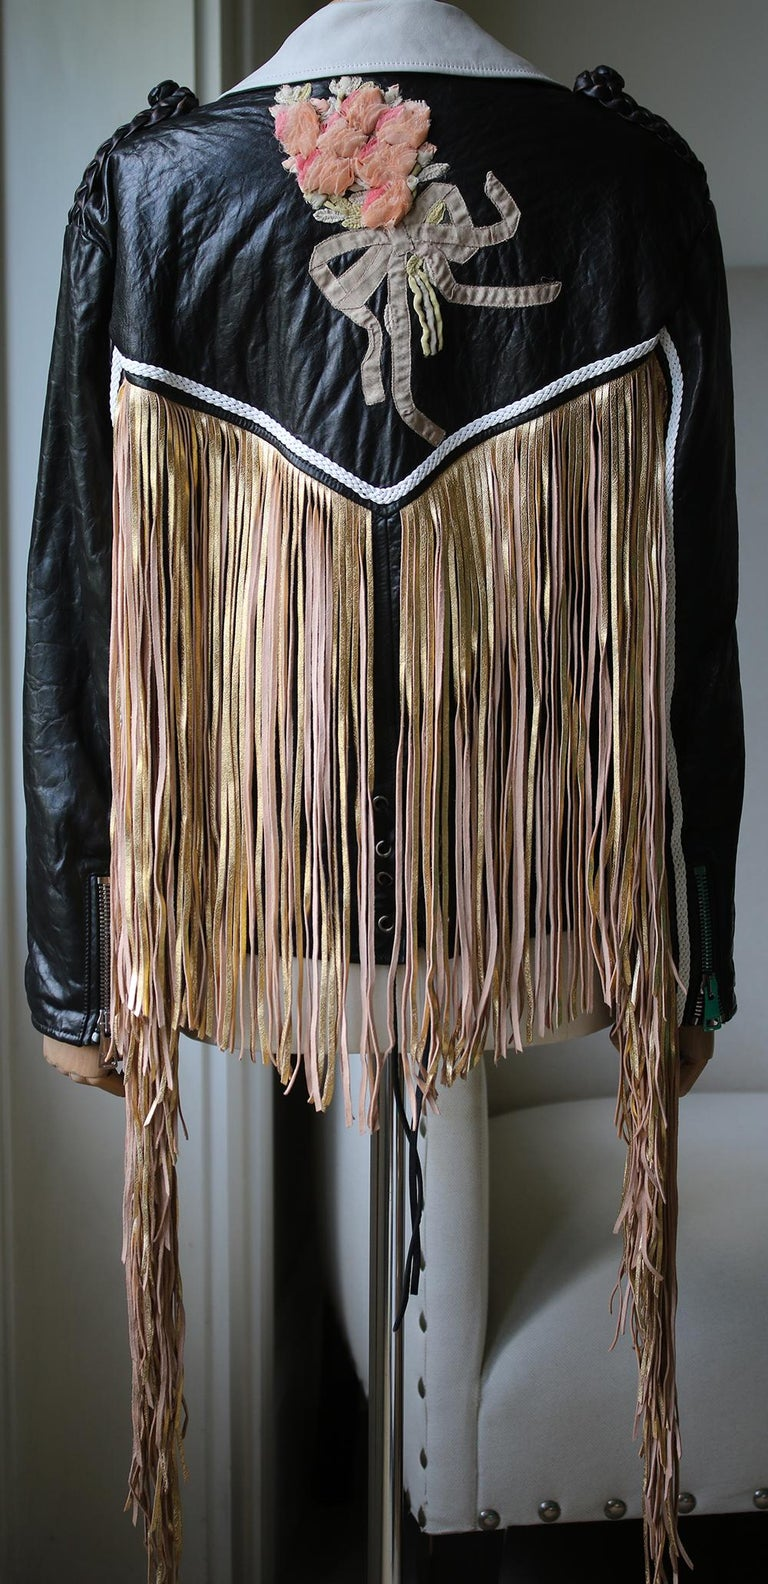 Gucci Fringed Leather Jacket In Excellent Condition For Sale In London, GB